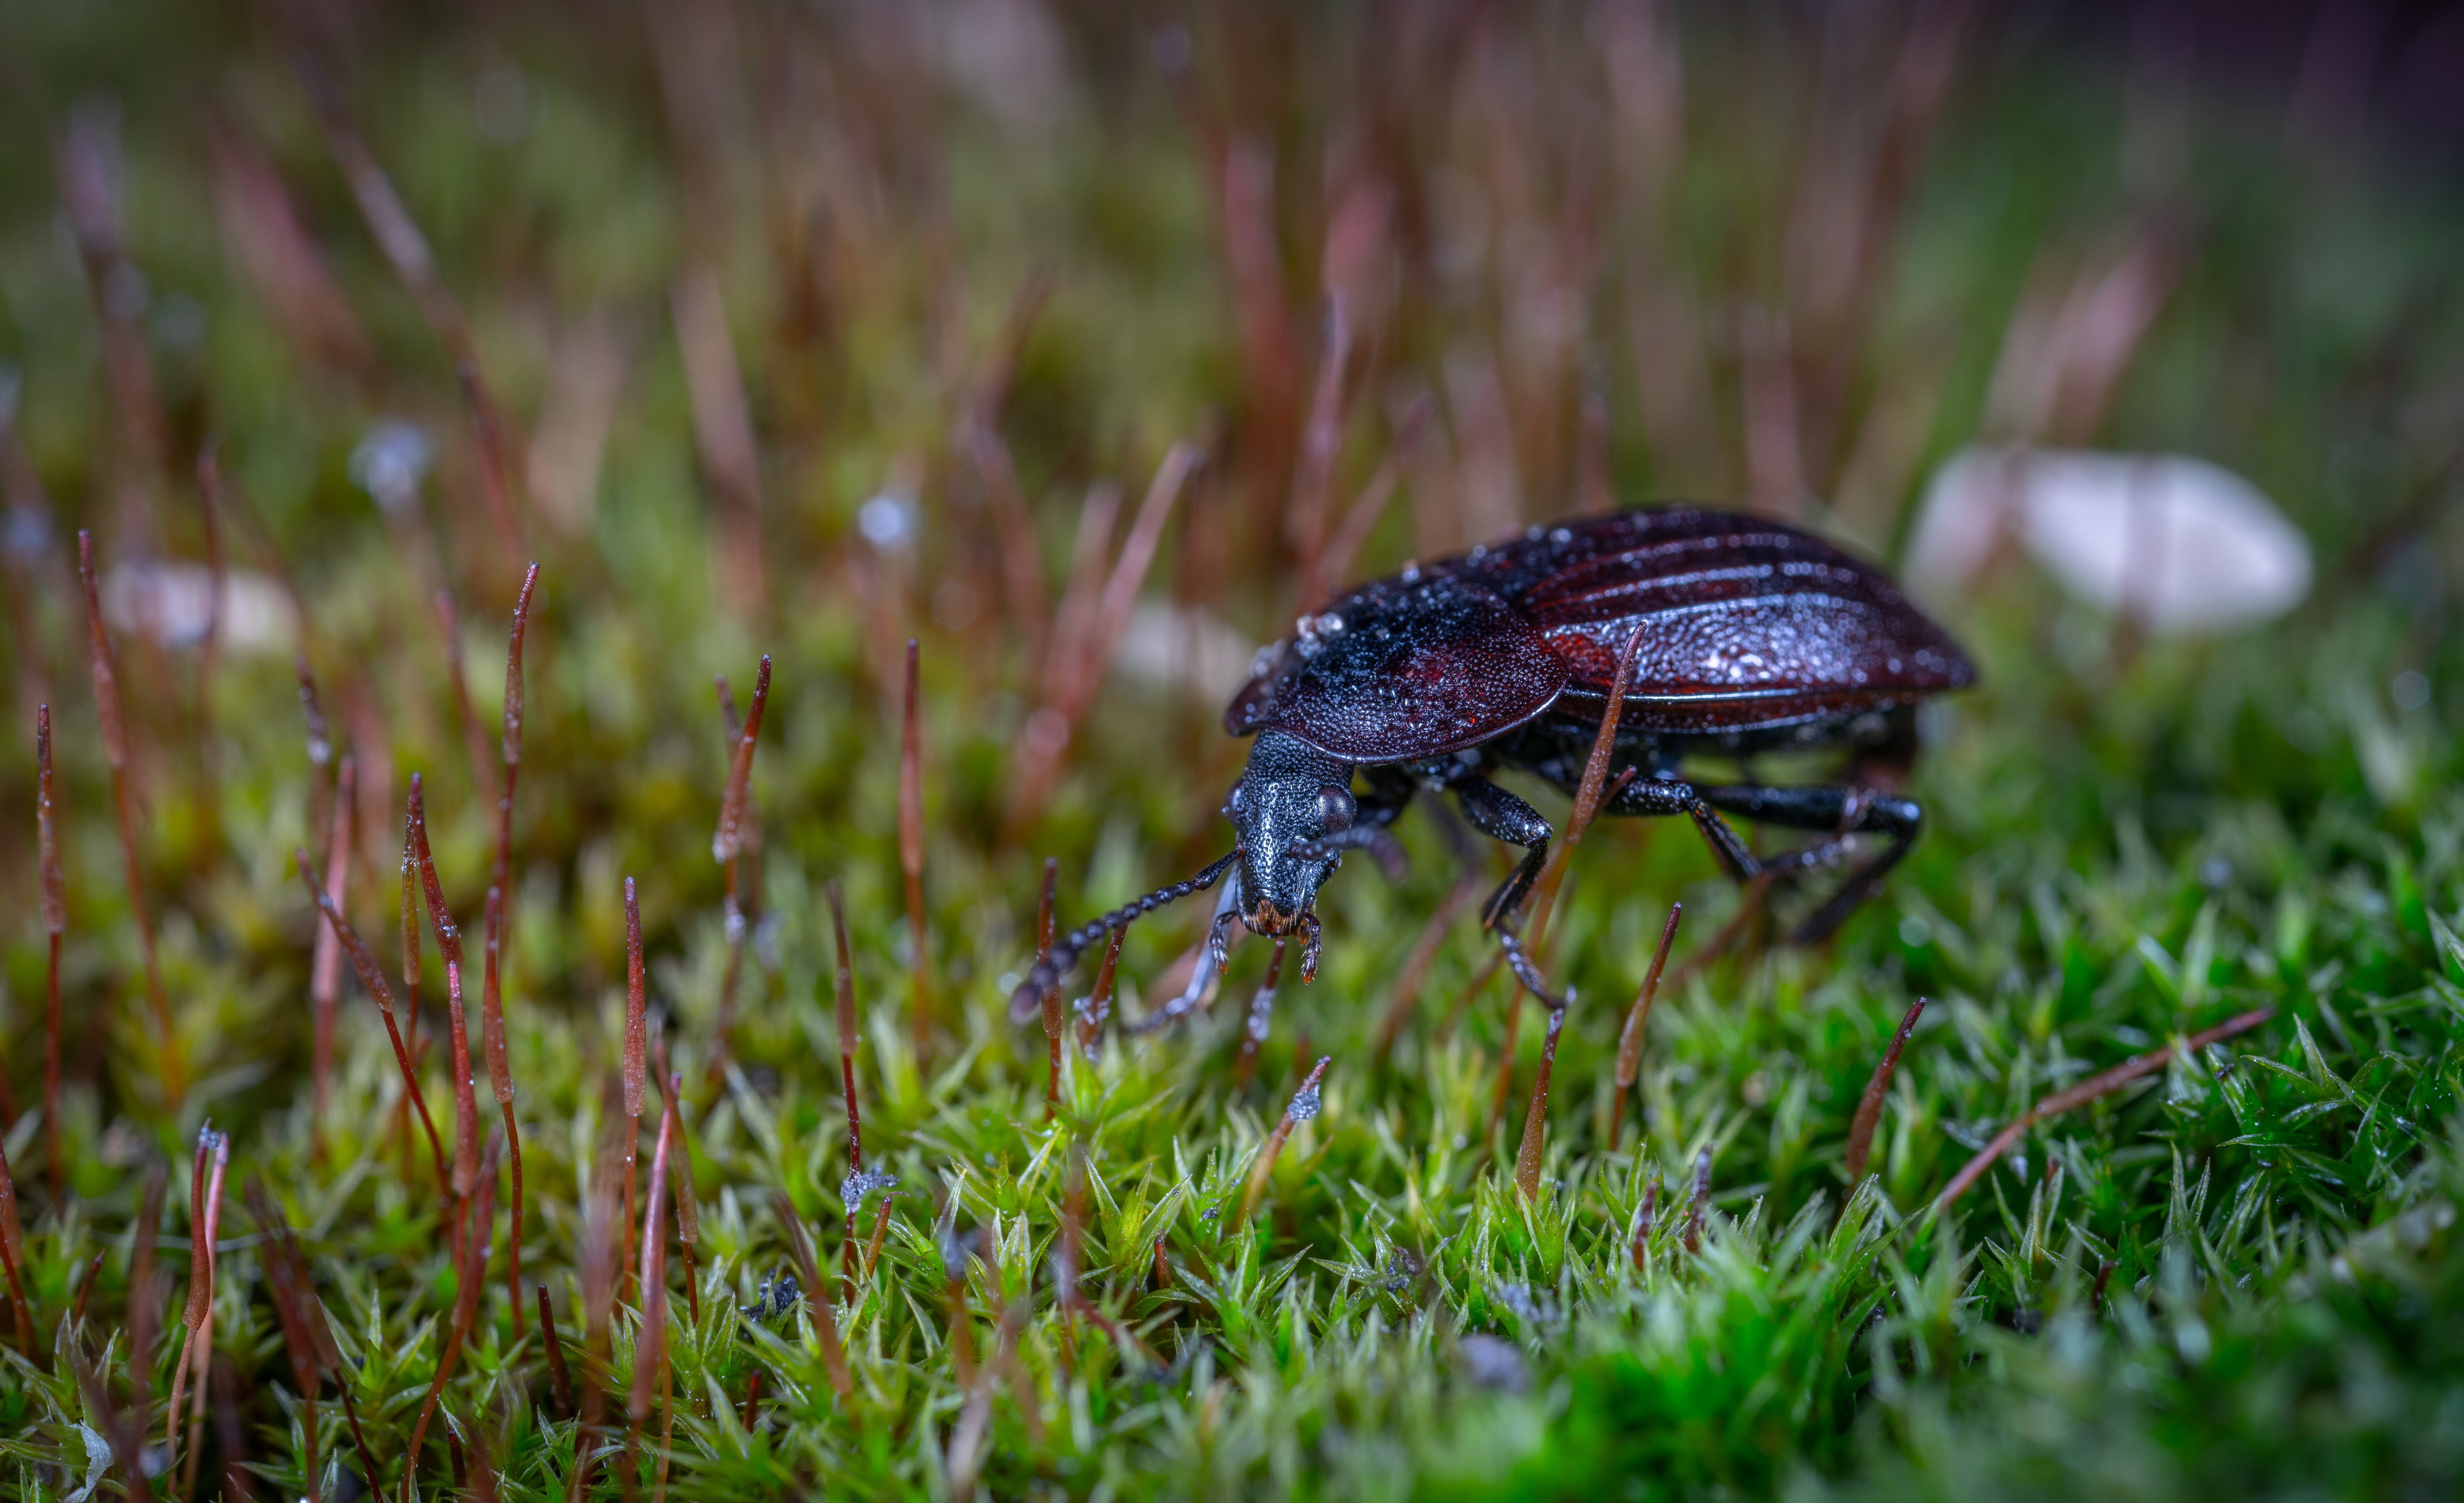 Black Ground Beetle on Green Grass in Closeup Photography